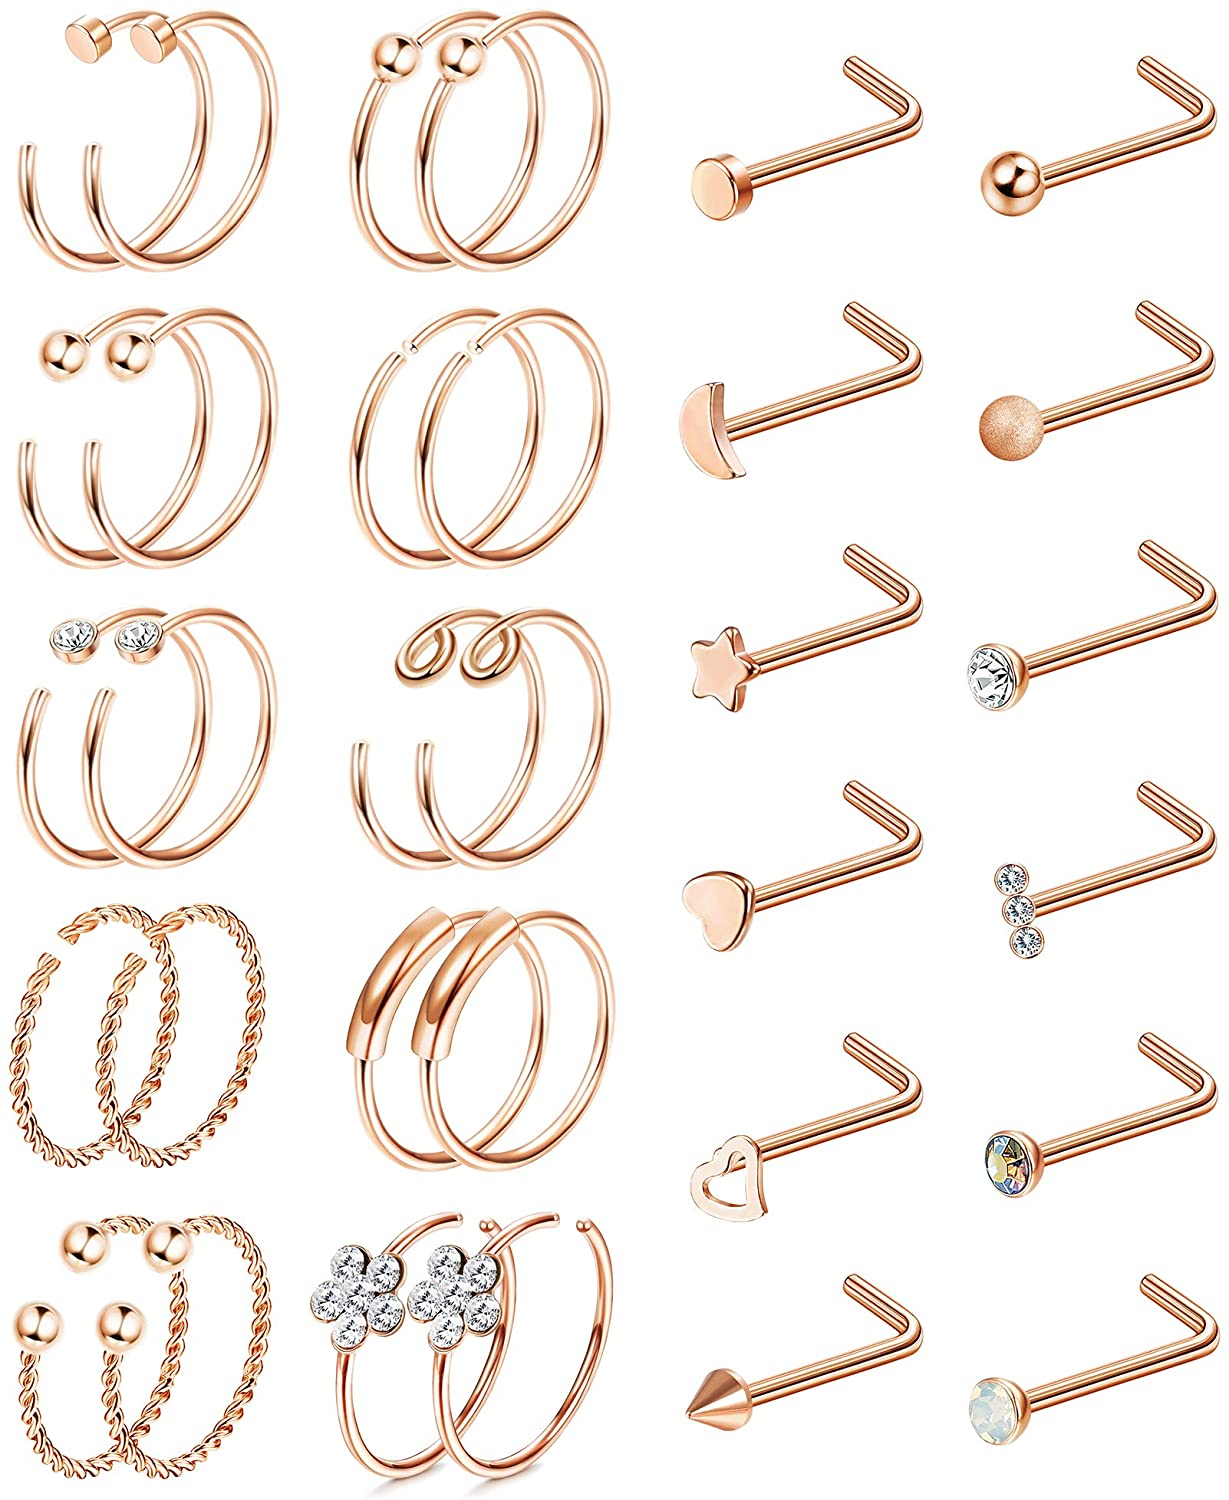 BodyBonita 32pcs Nose Rings Nose Studs 316L Stainless Steel L Bone Screw Shaped Nose Studs CZ Hoop Tragus Cartilage Labret Earrings Nose Piercing Jewelry for Women Men 20G